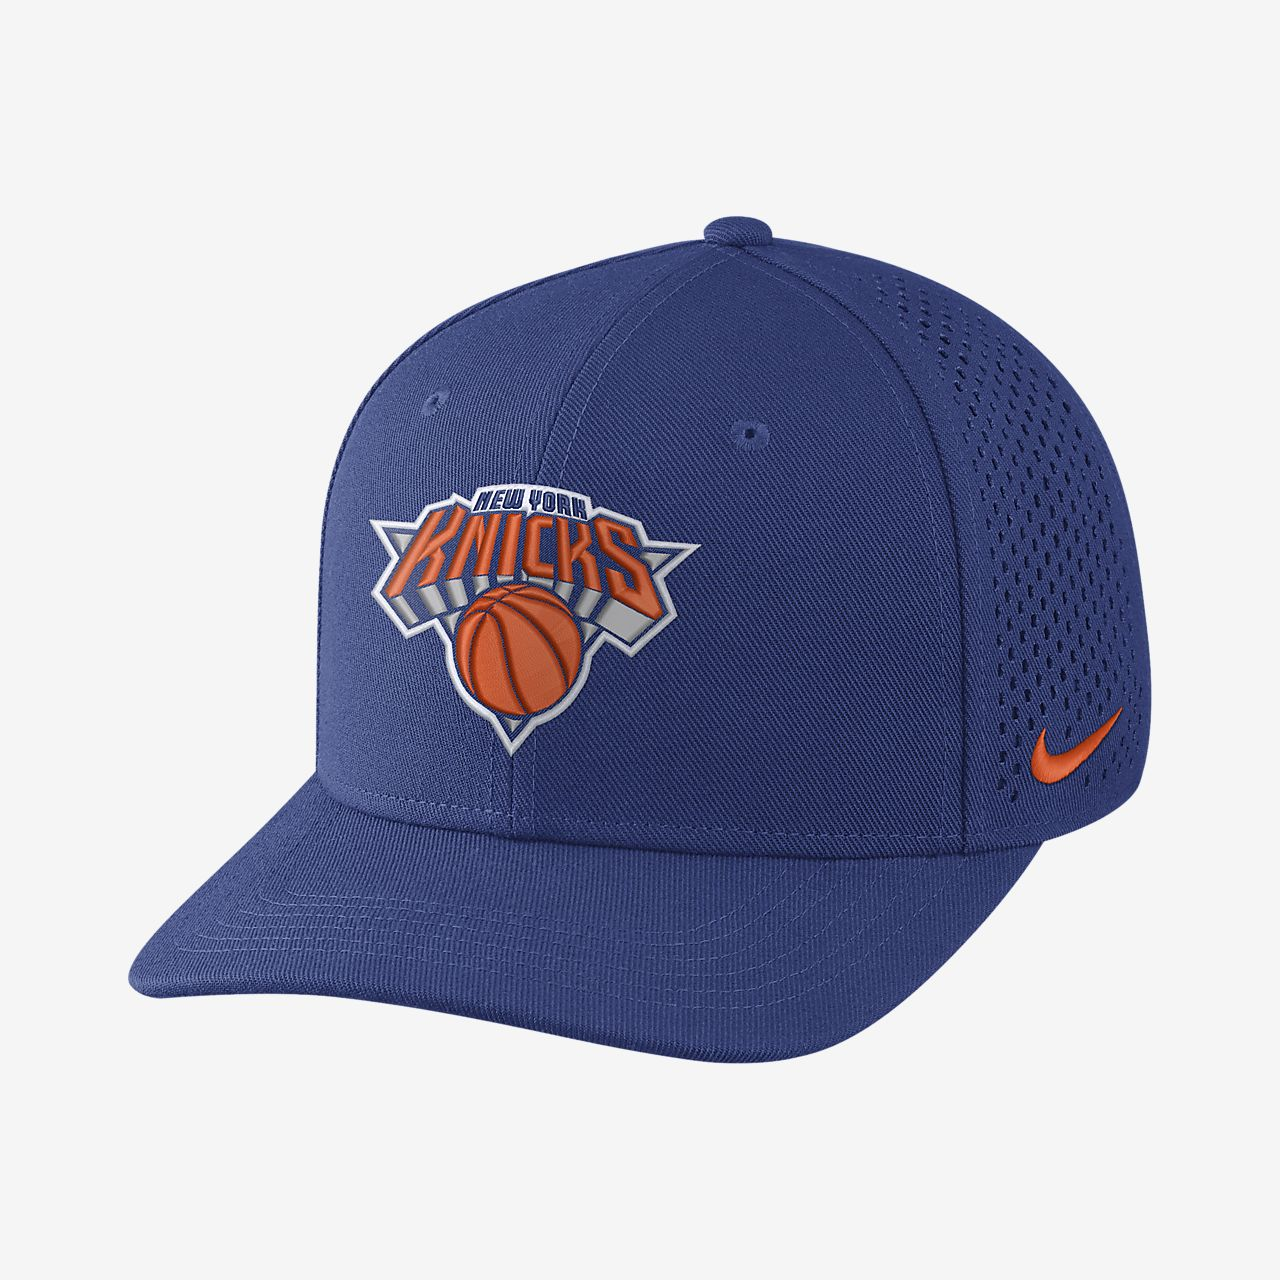 newest 3ac7a 79eff New York Knicks Nike AeroBill Classic99 Unisex Adjustable NBA Hat